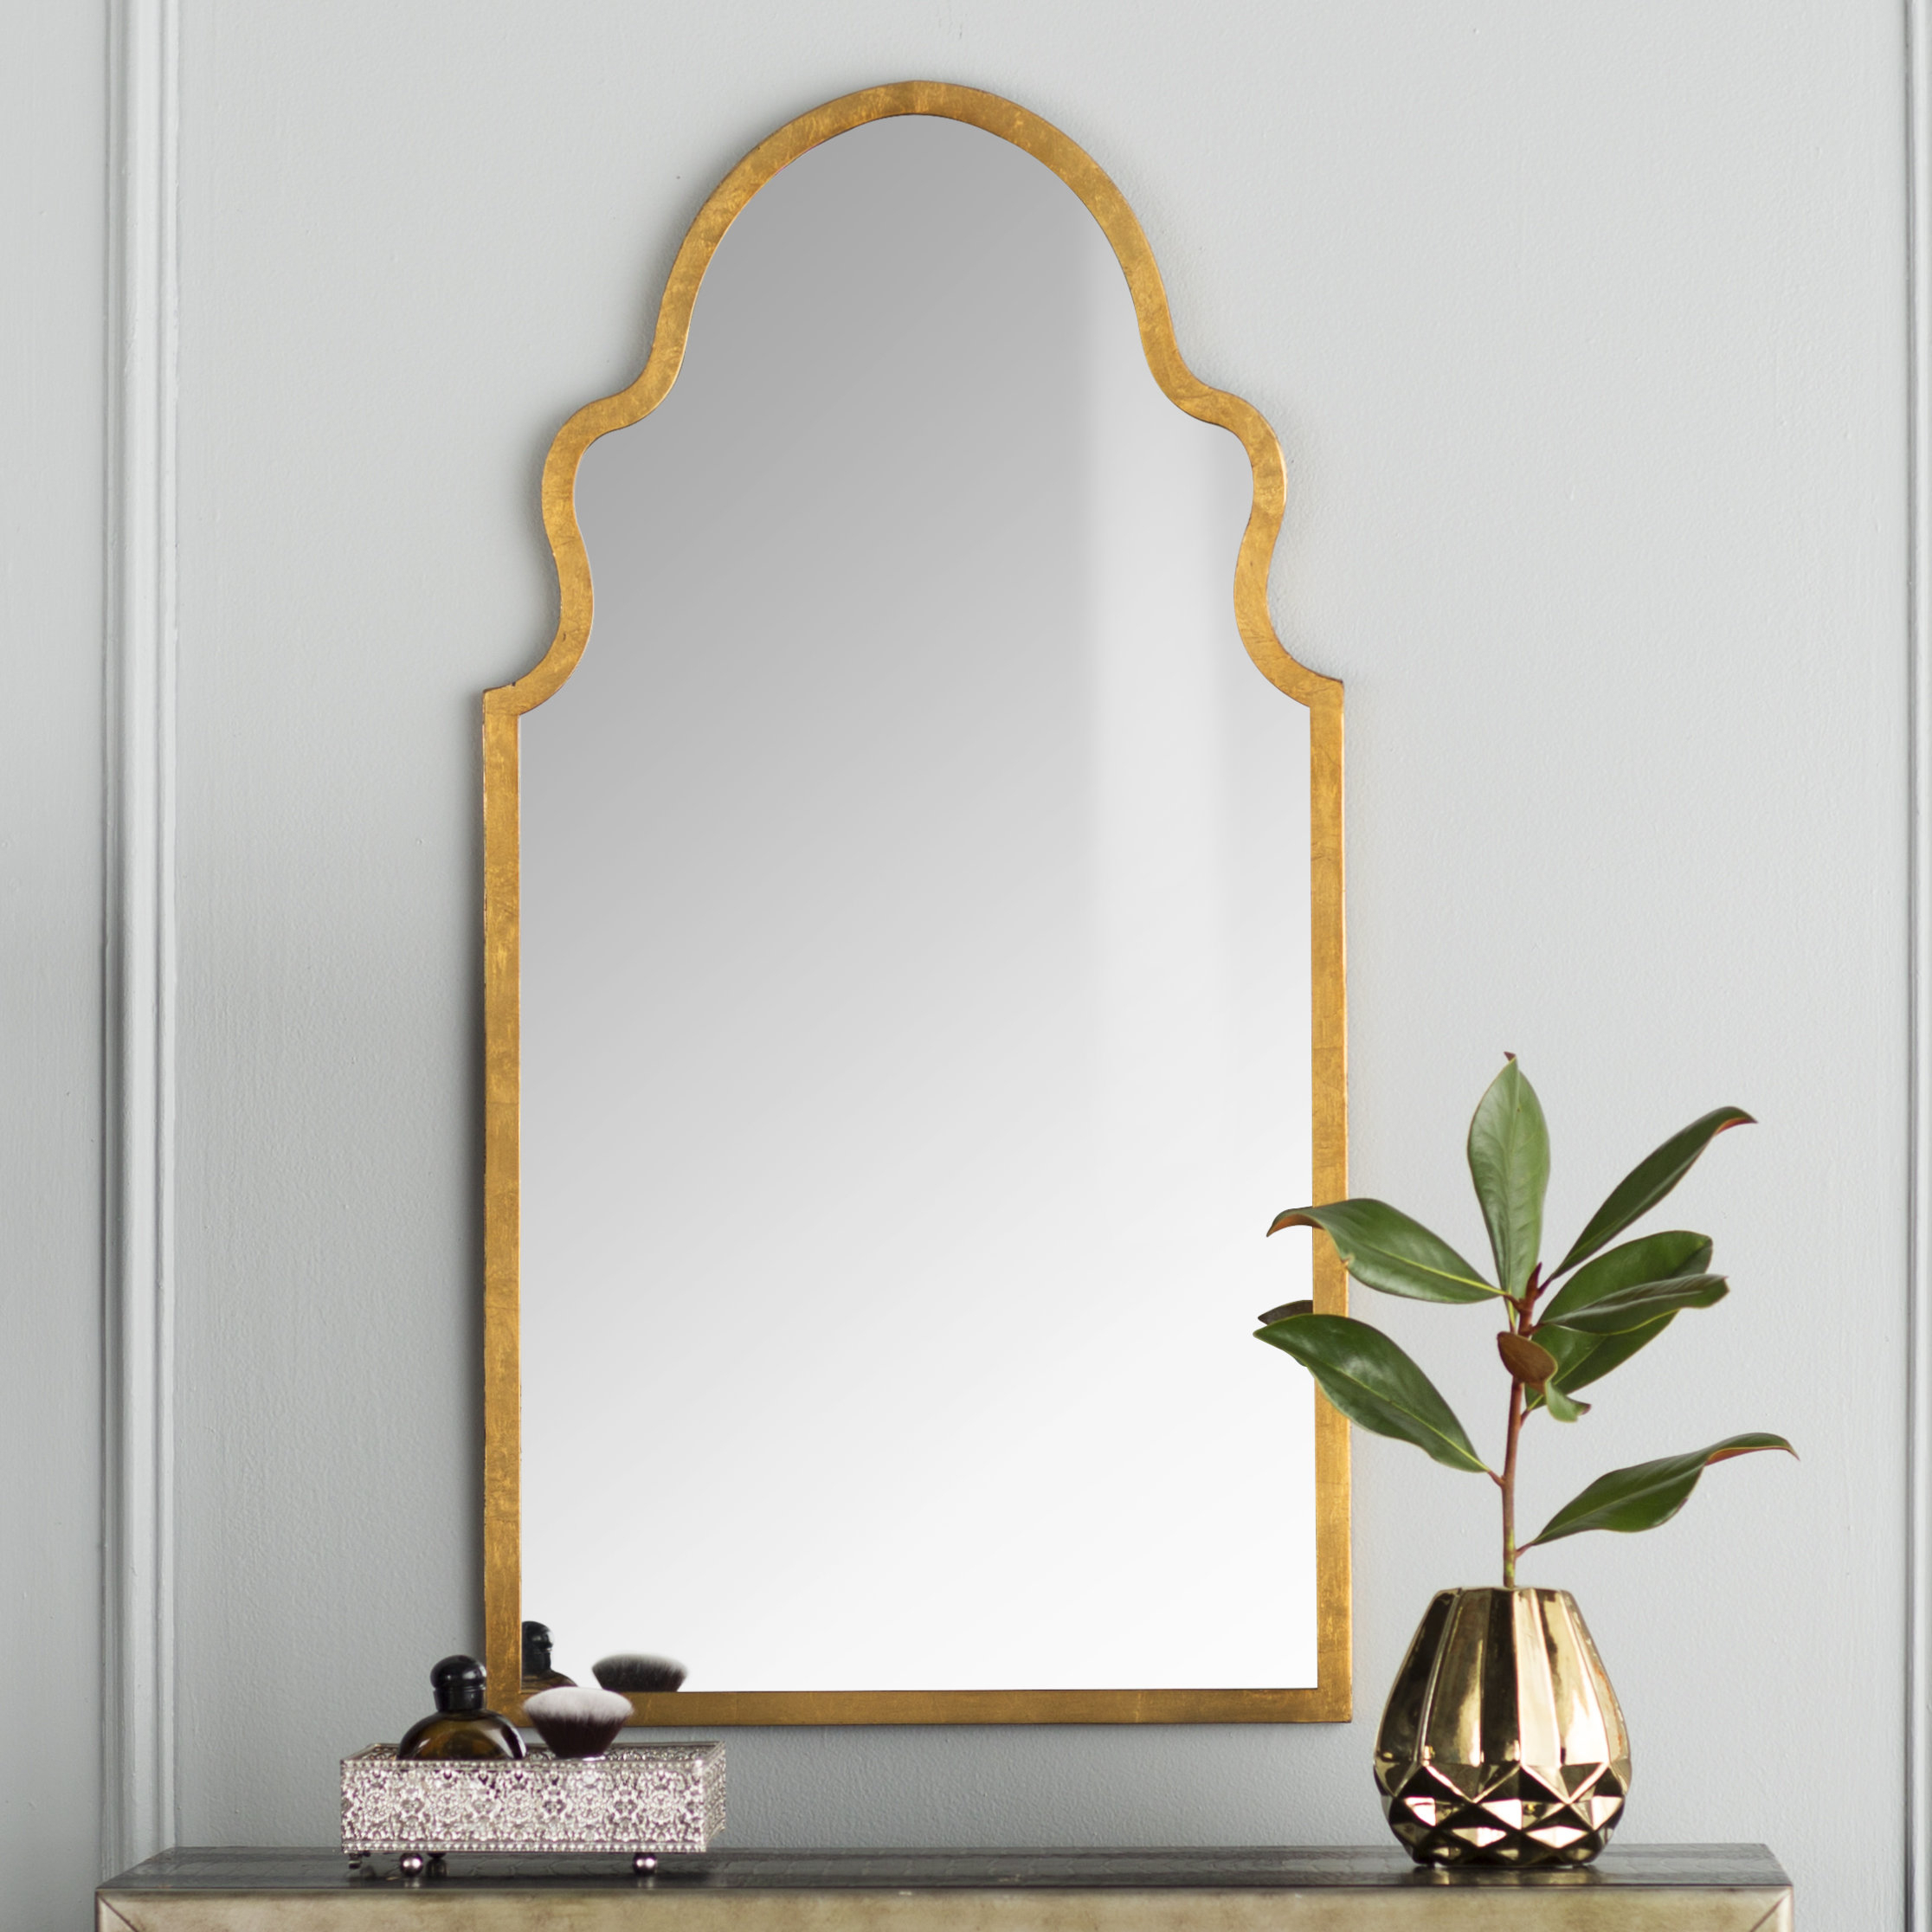 Morlan Accent Mirrors With Regard To Latest Lincoln Wall Mirror (View 13 of 20)